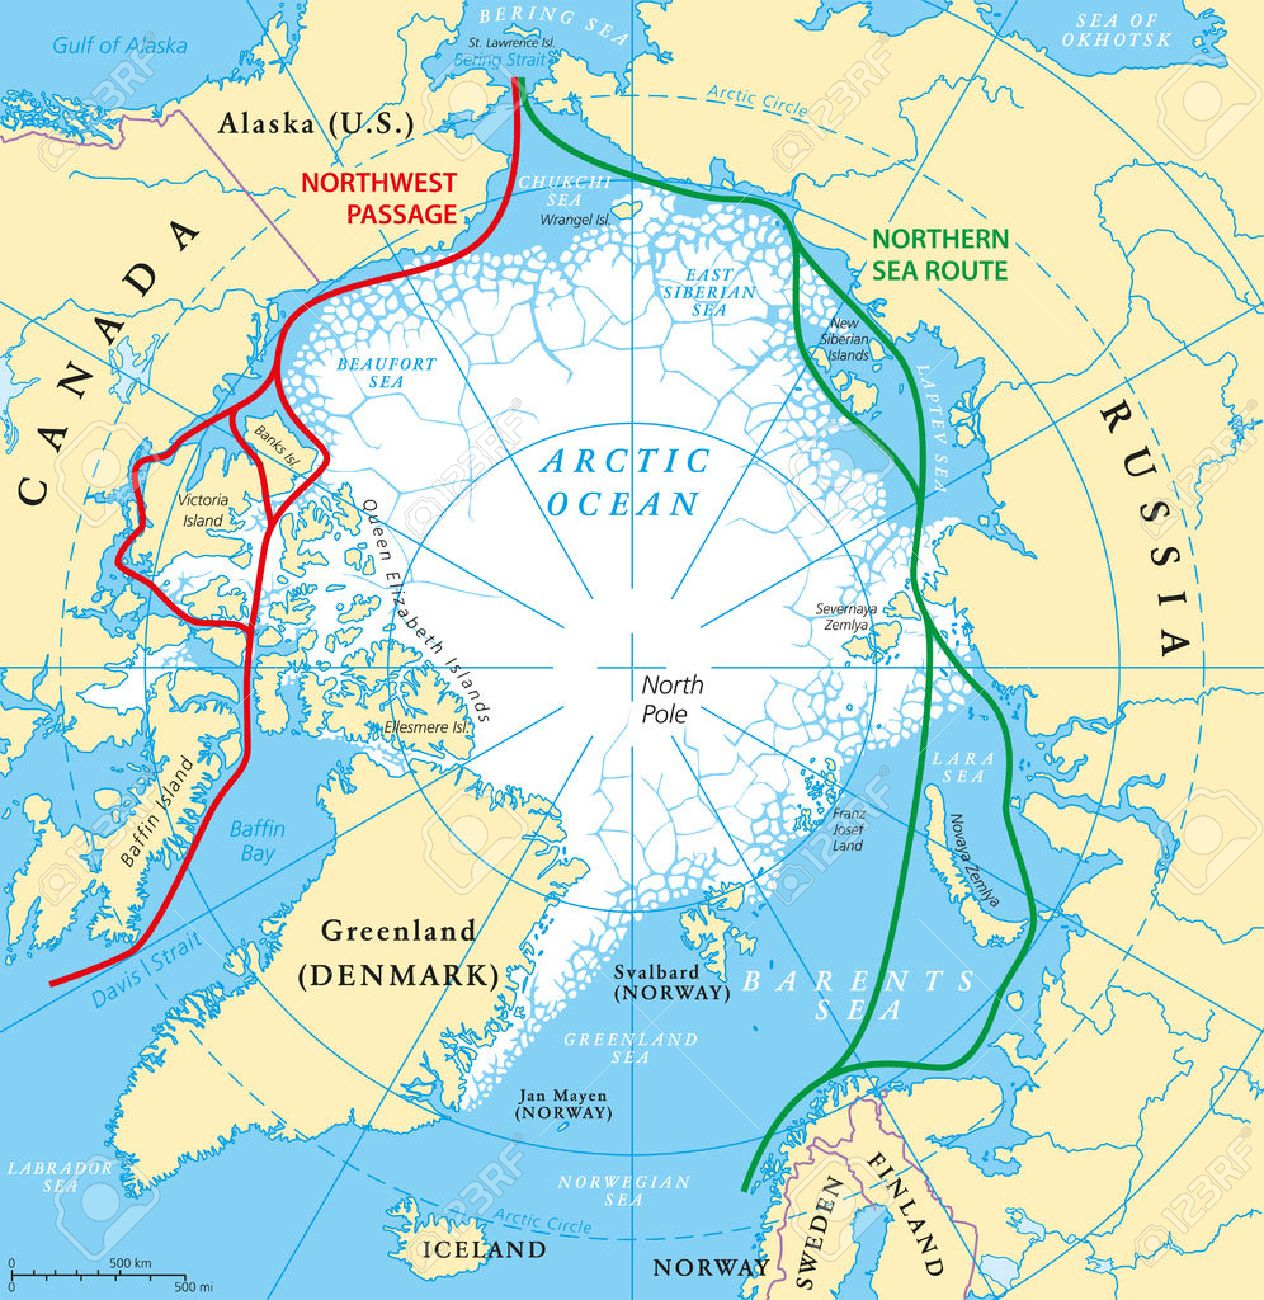 Arctic Ocean sea routes map with Northwest Passage and Northern Sea Route. Arctic Region map with countries, national borders, rivers, lakes and average minimum extent of sea ice. English labeling. - 58784788